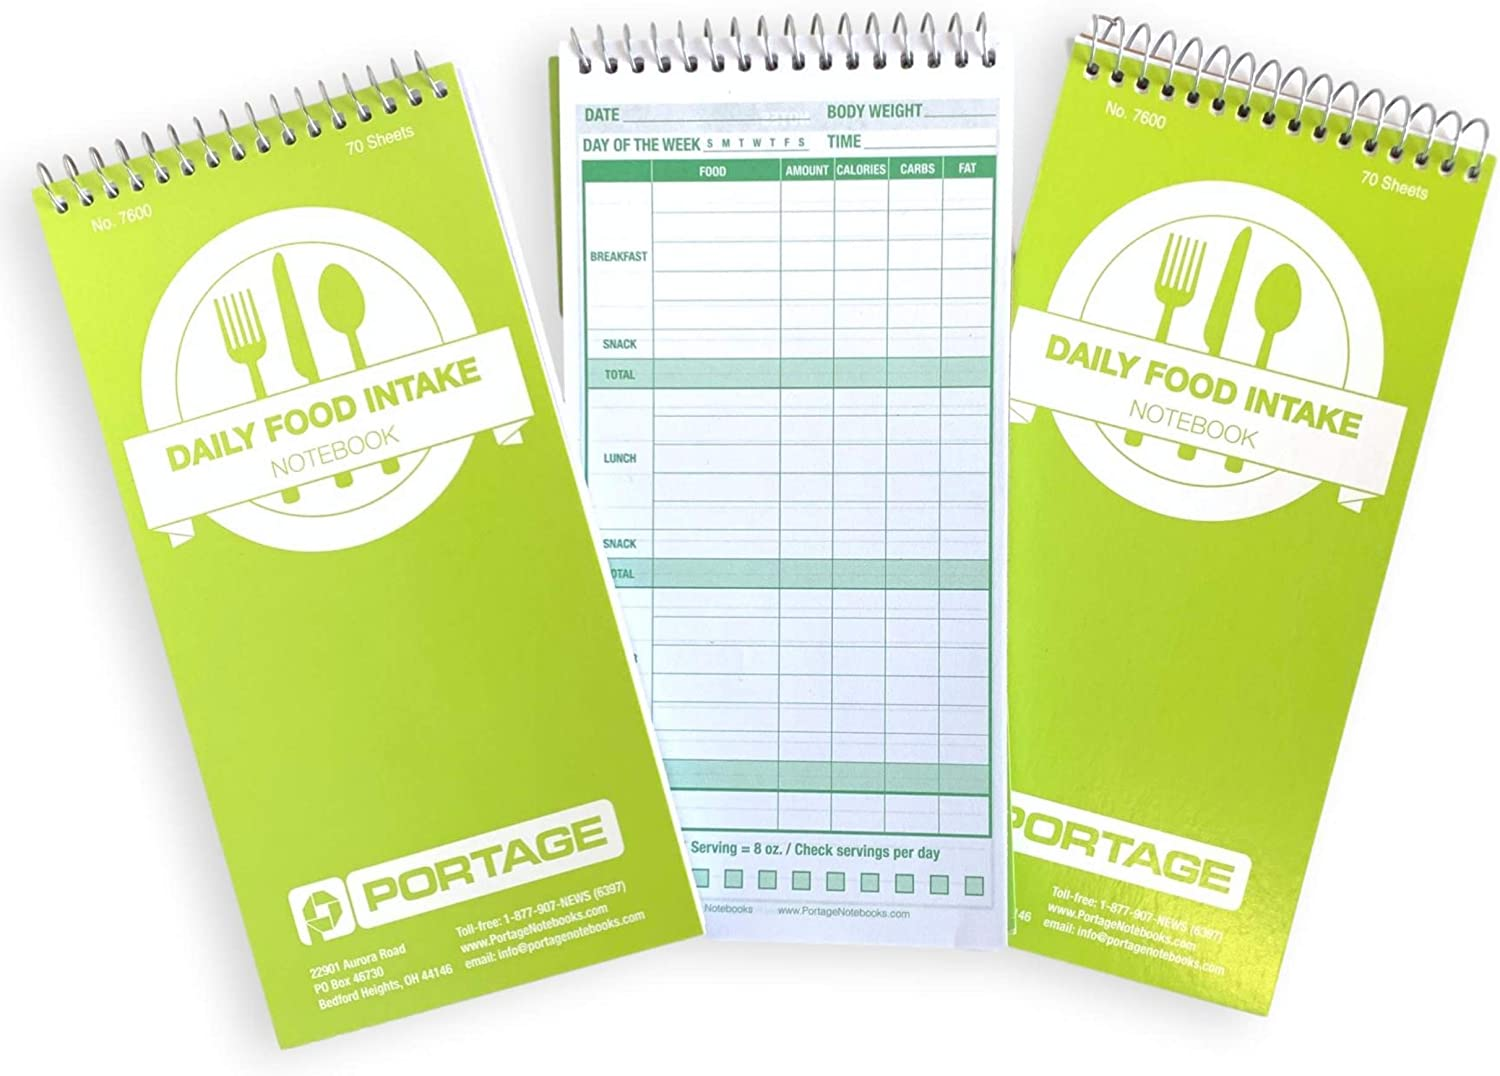 """Daily Food Intake Journal Notebook – 4"""" x 8"""" Meal Tracker/Food Diary to Log Calories, Carbs, Fat Perfect for KETO – 140 Pages (3 Pack) : Office Products"""